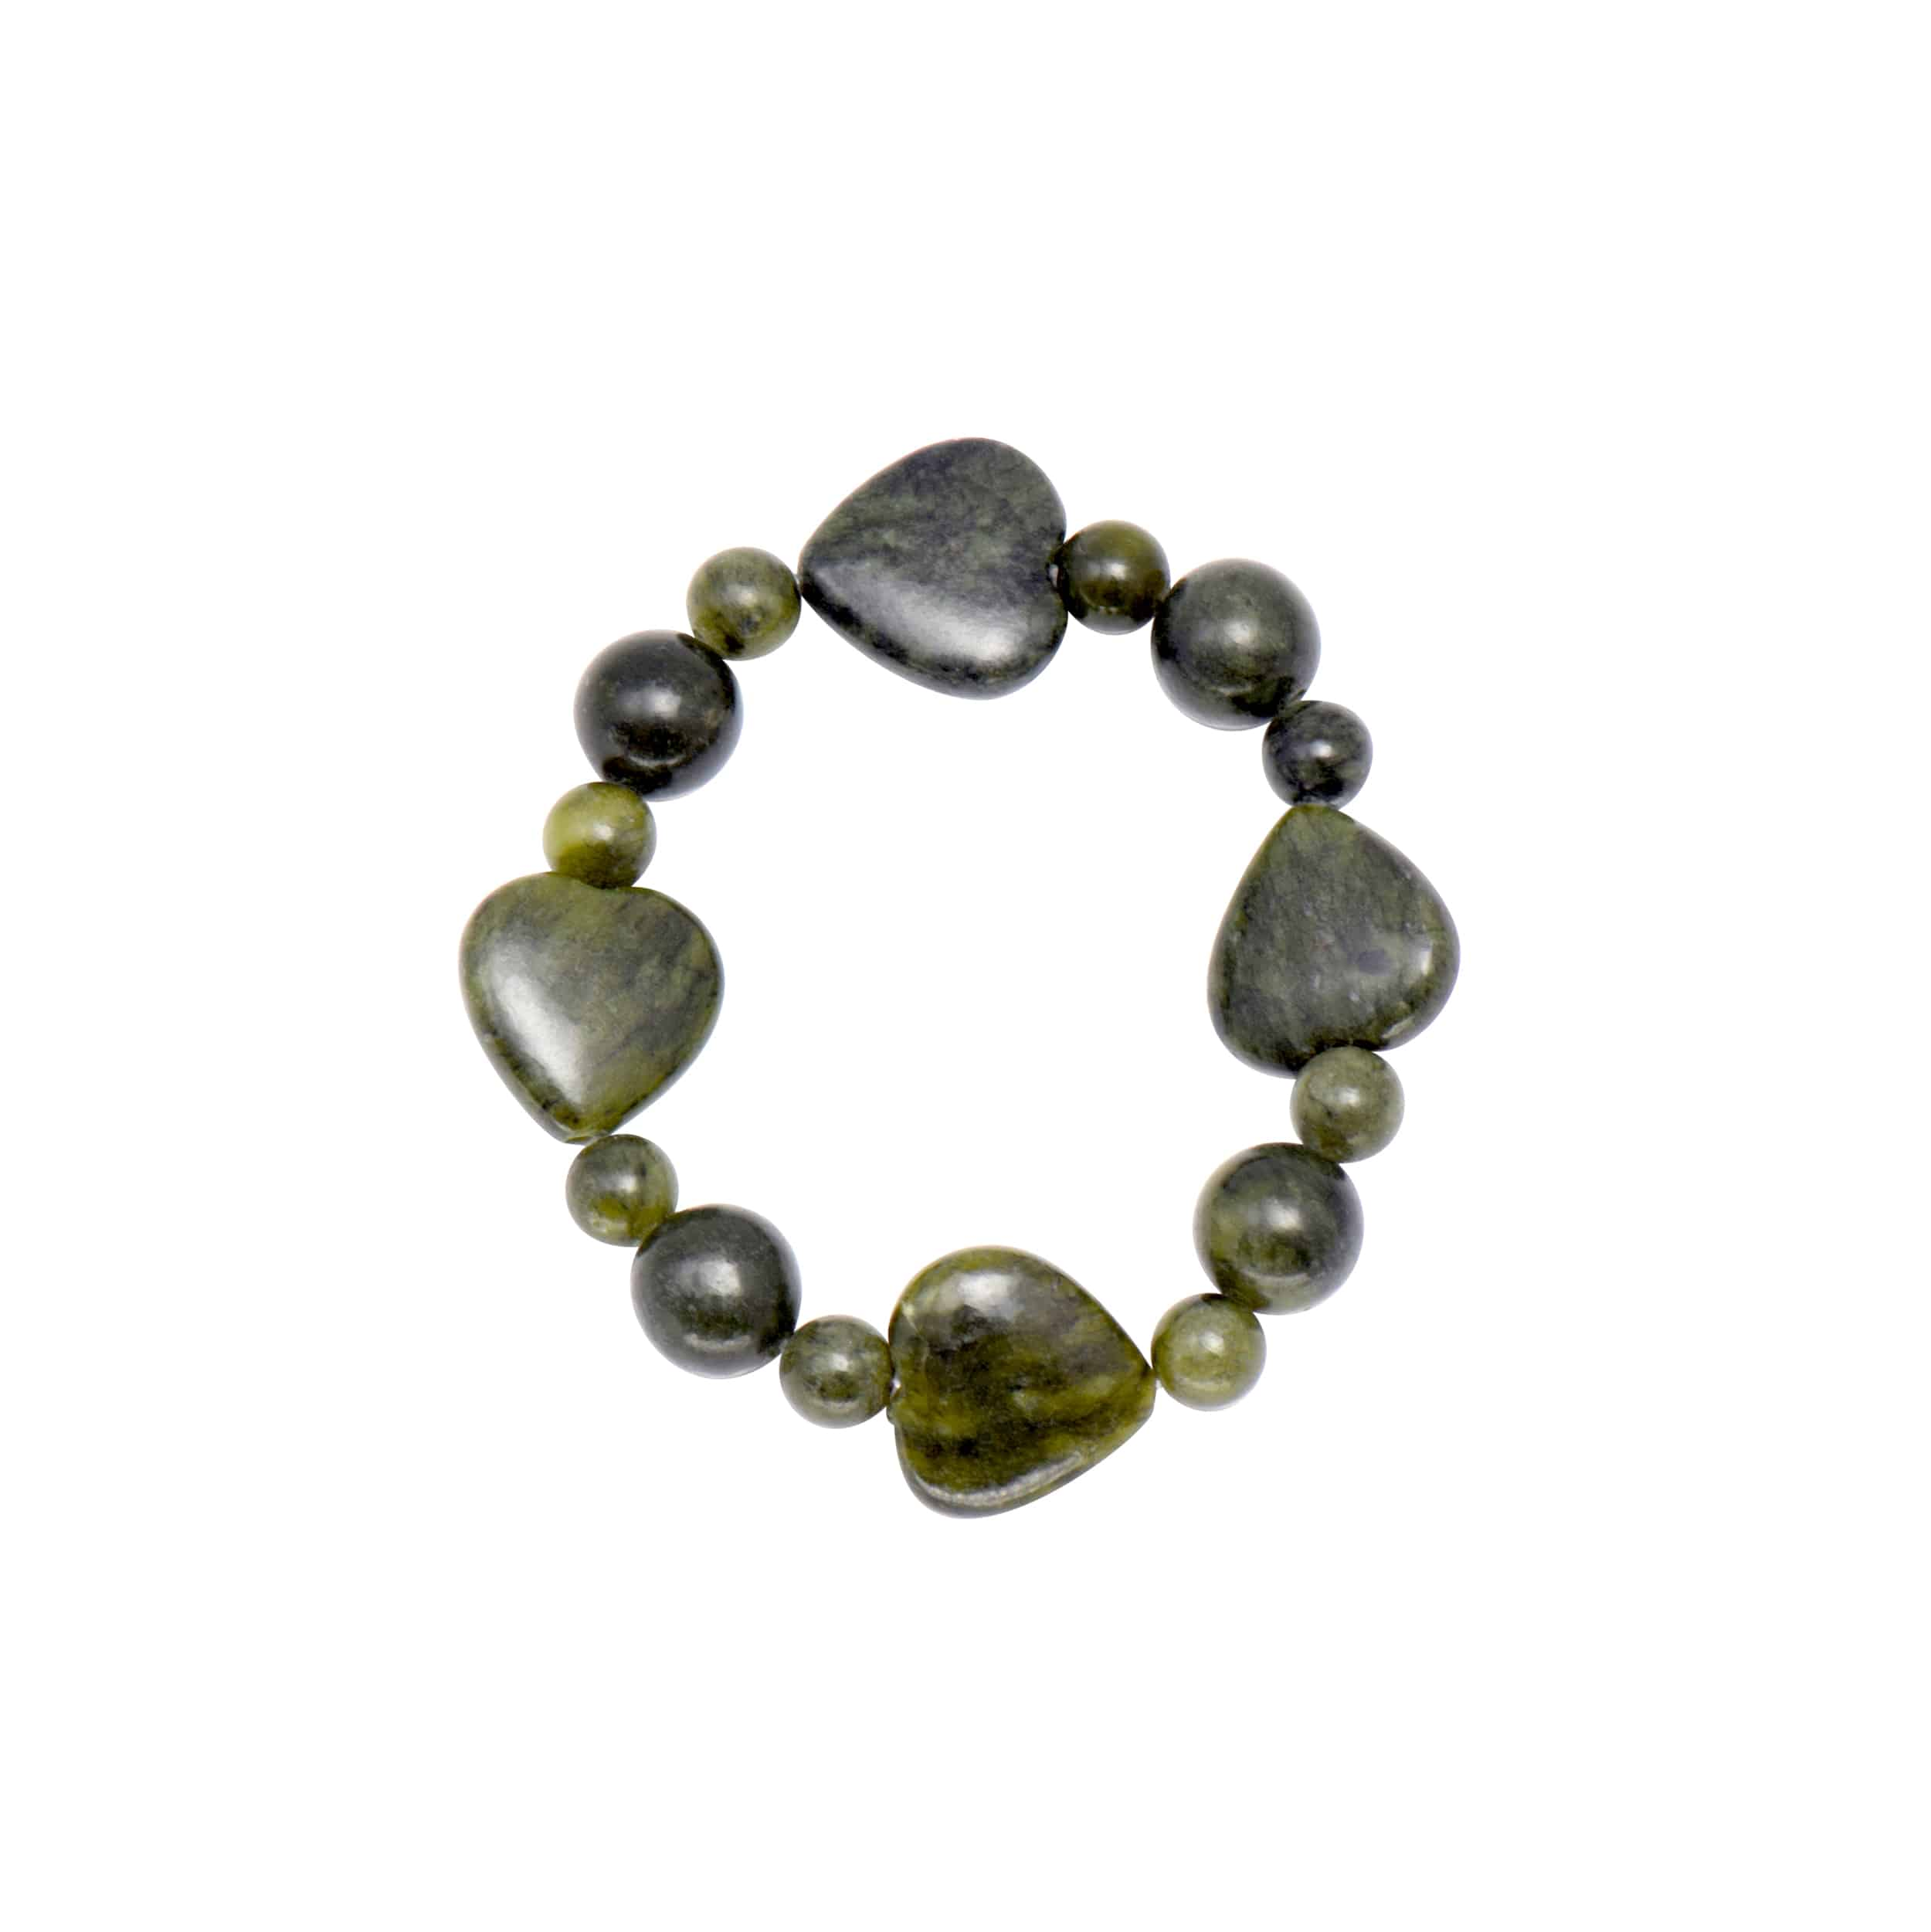 Connemara Marble Round and Heart Shaped Bracelet